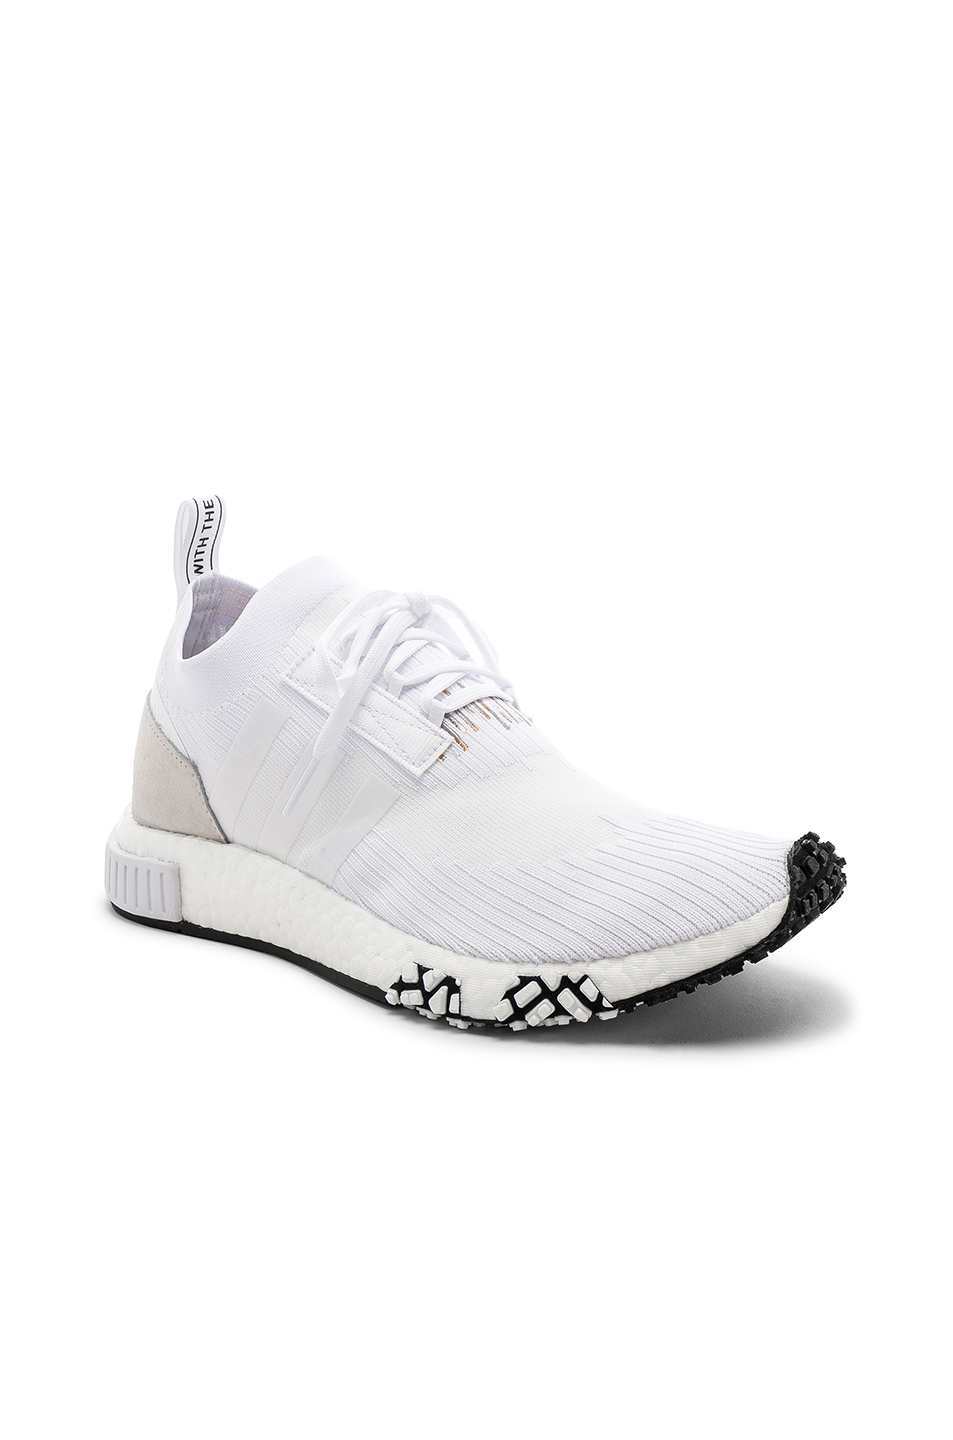 321f0852eb7 Buy Original adidas Originals NMD Racer PK at Indonesia